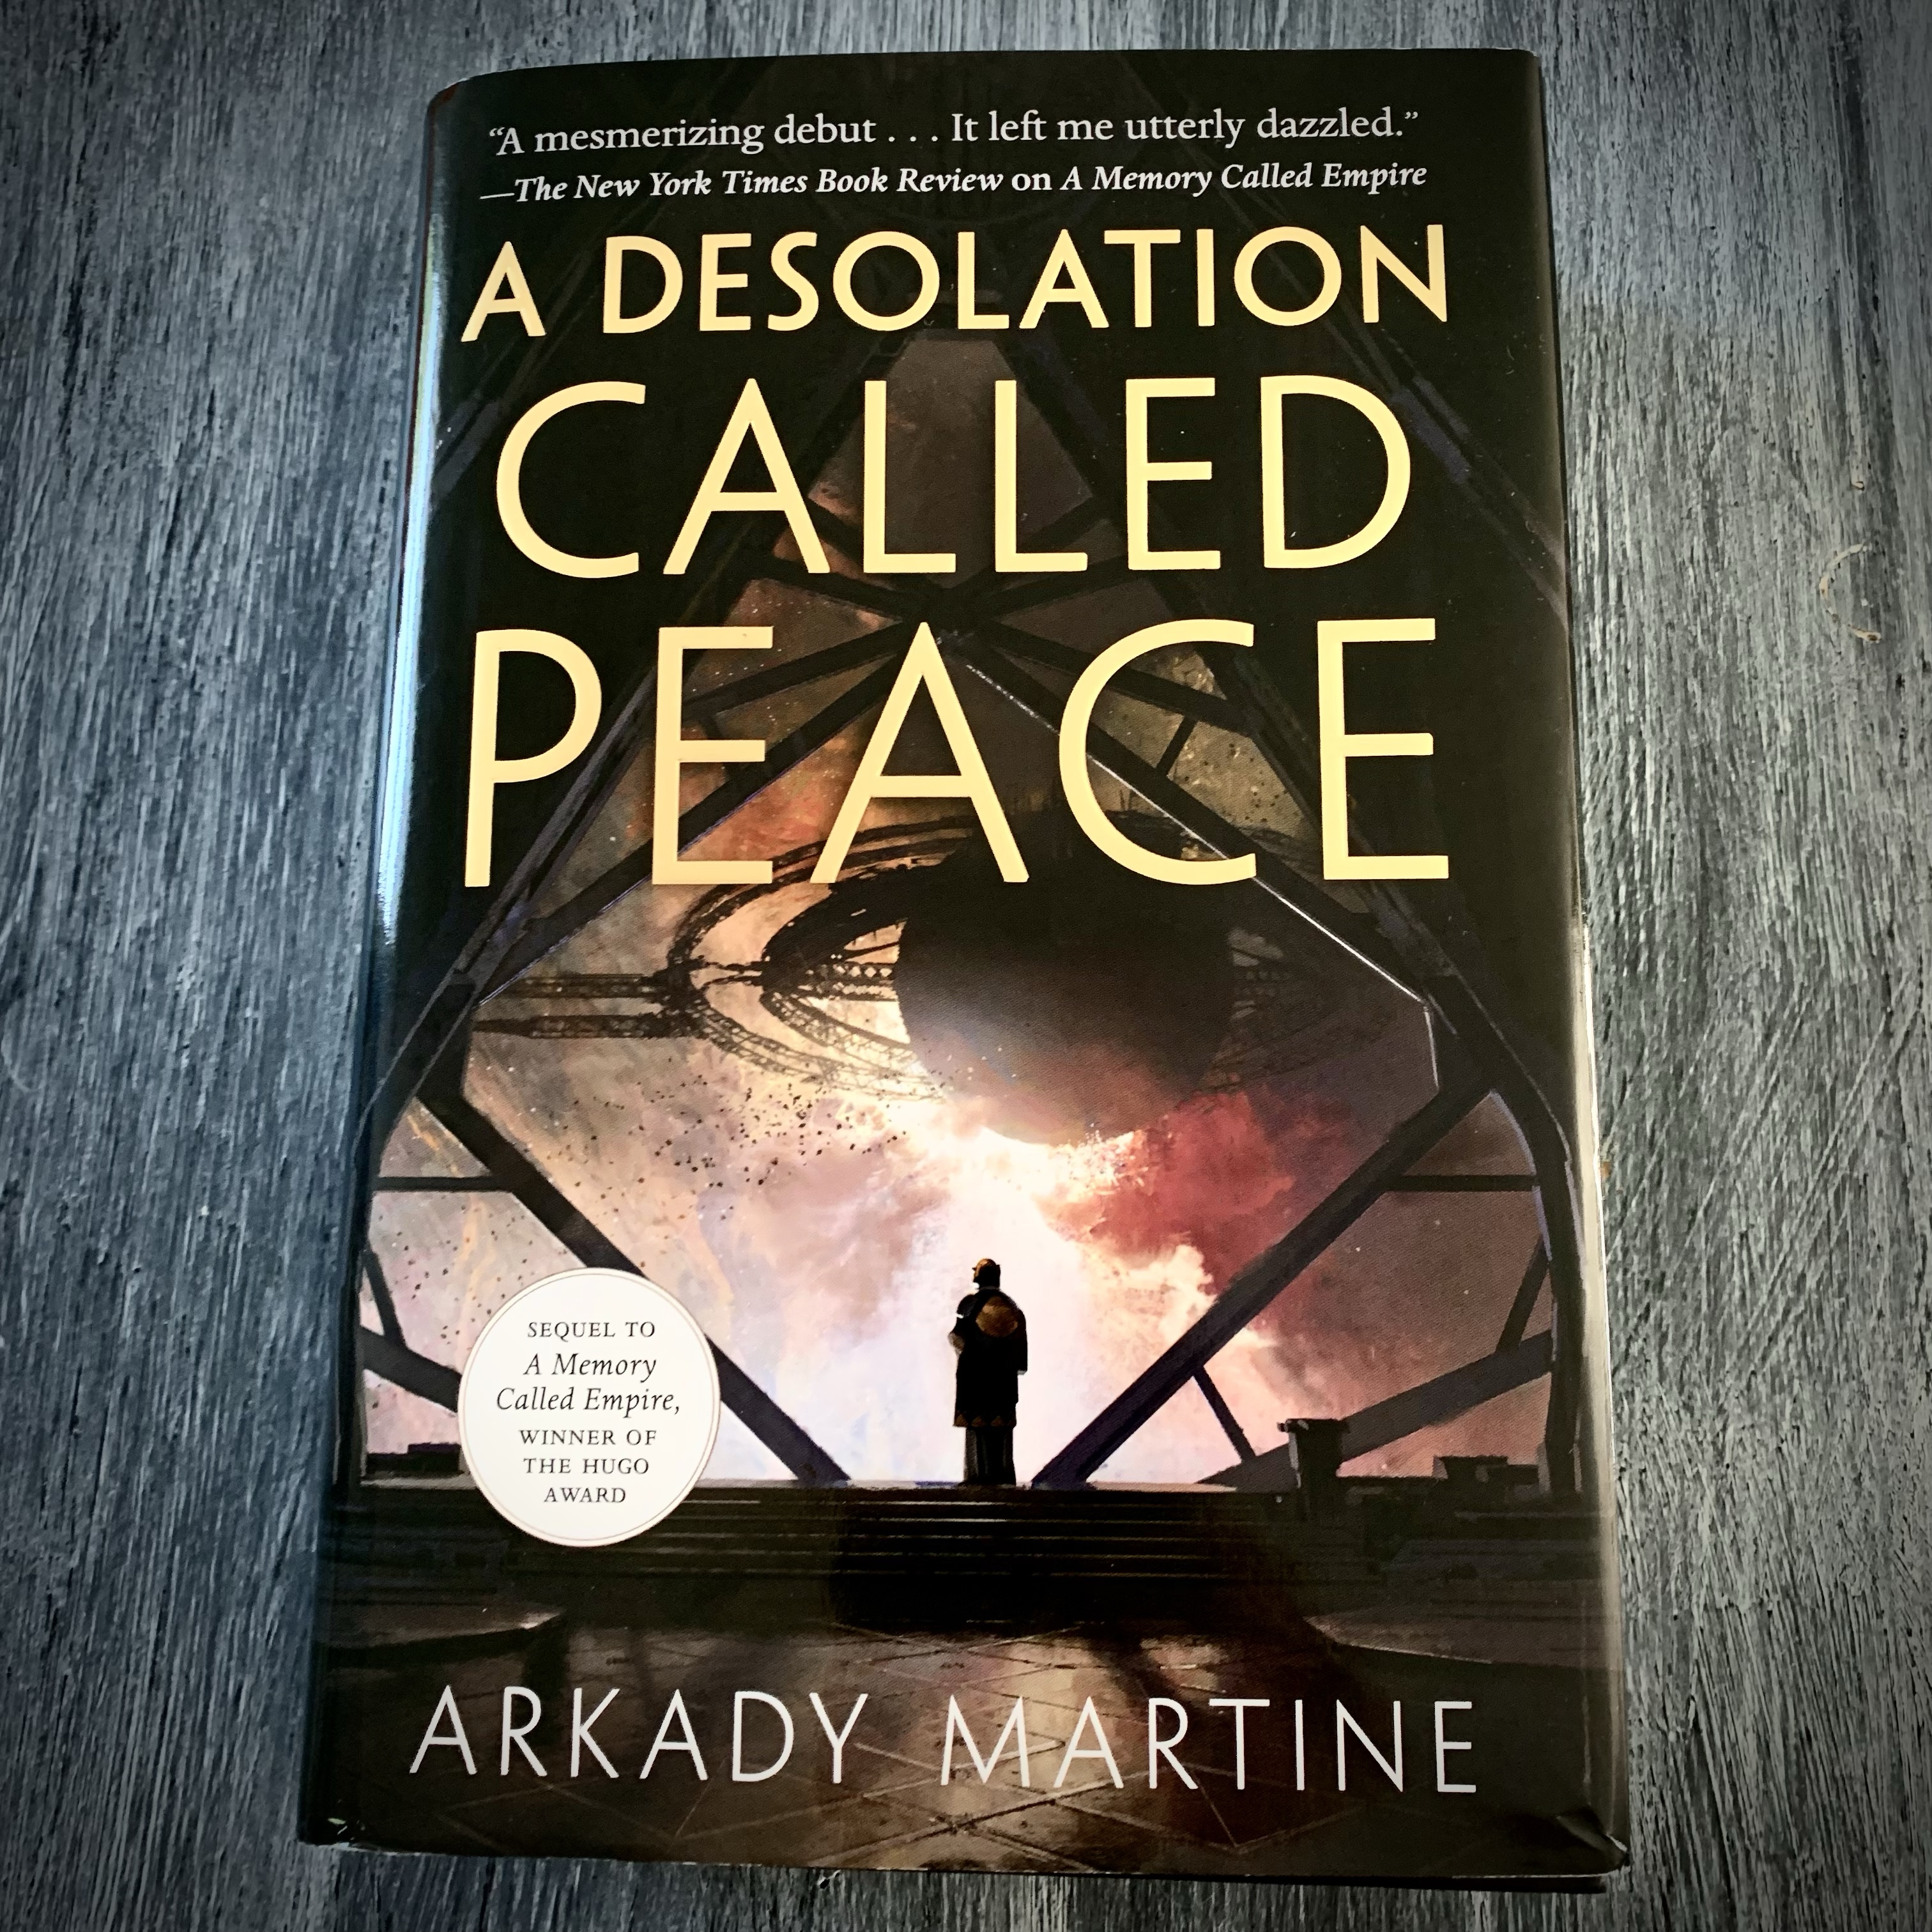 The cover of Arkady Martine's A Desolation Called Peace.